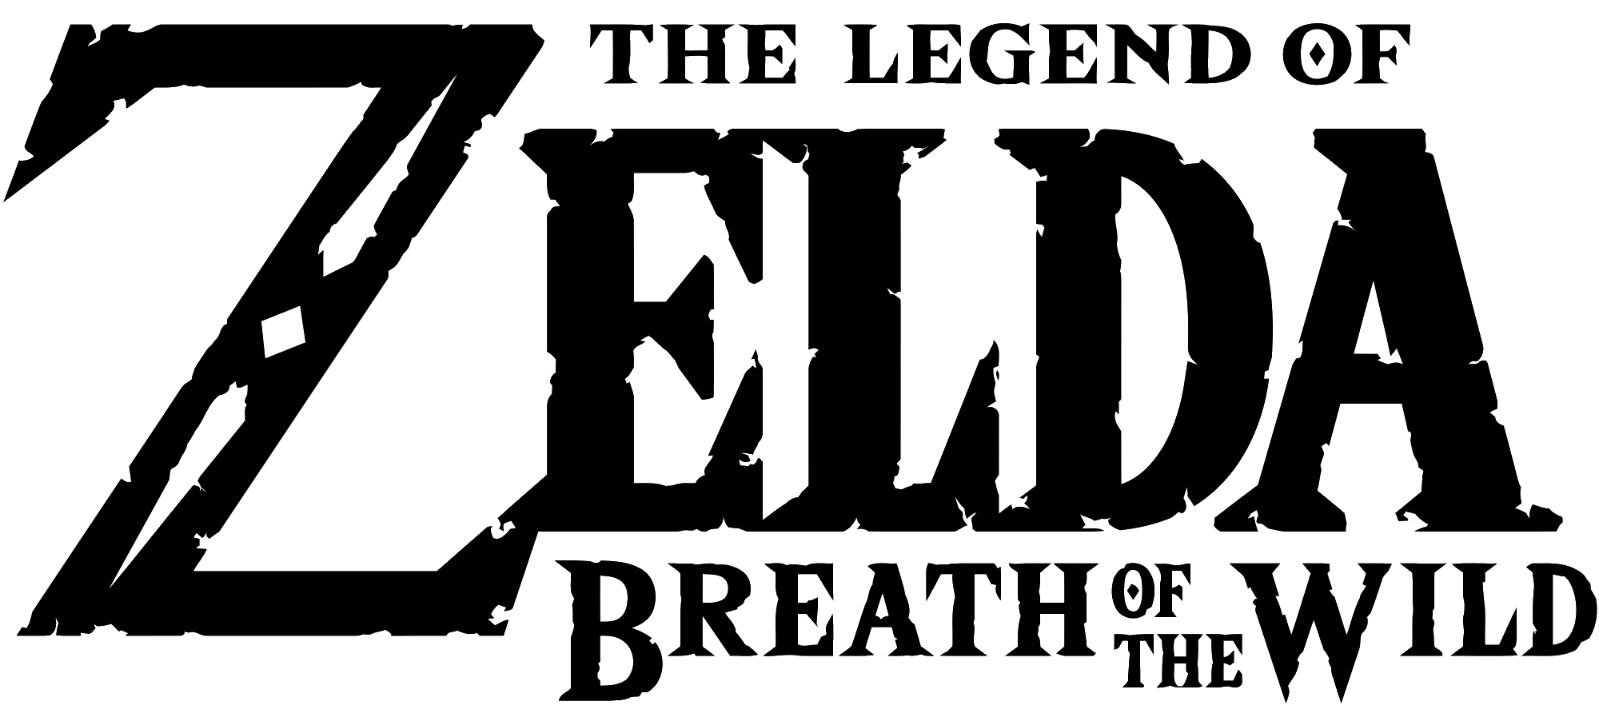 The logo for the video game, The Legend of Zelda Breath of the Wild